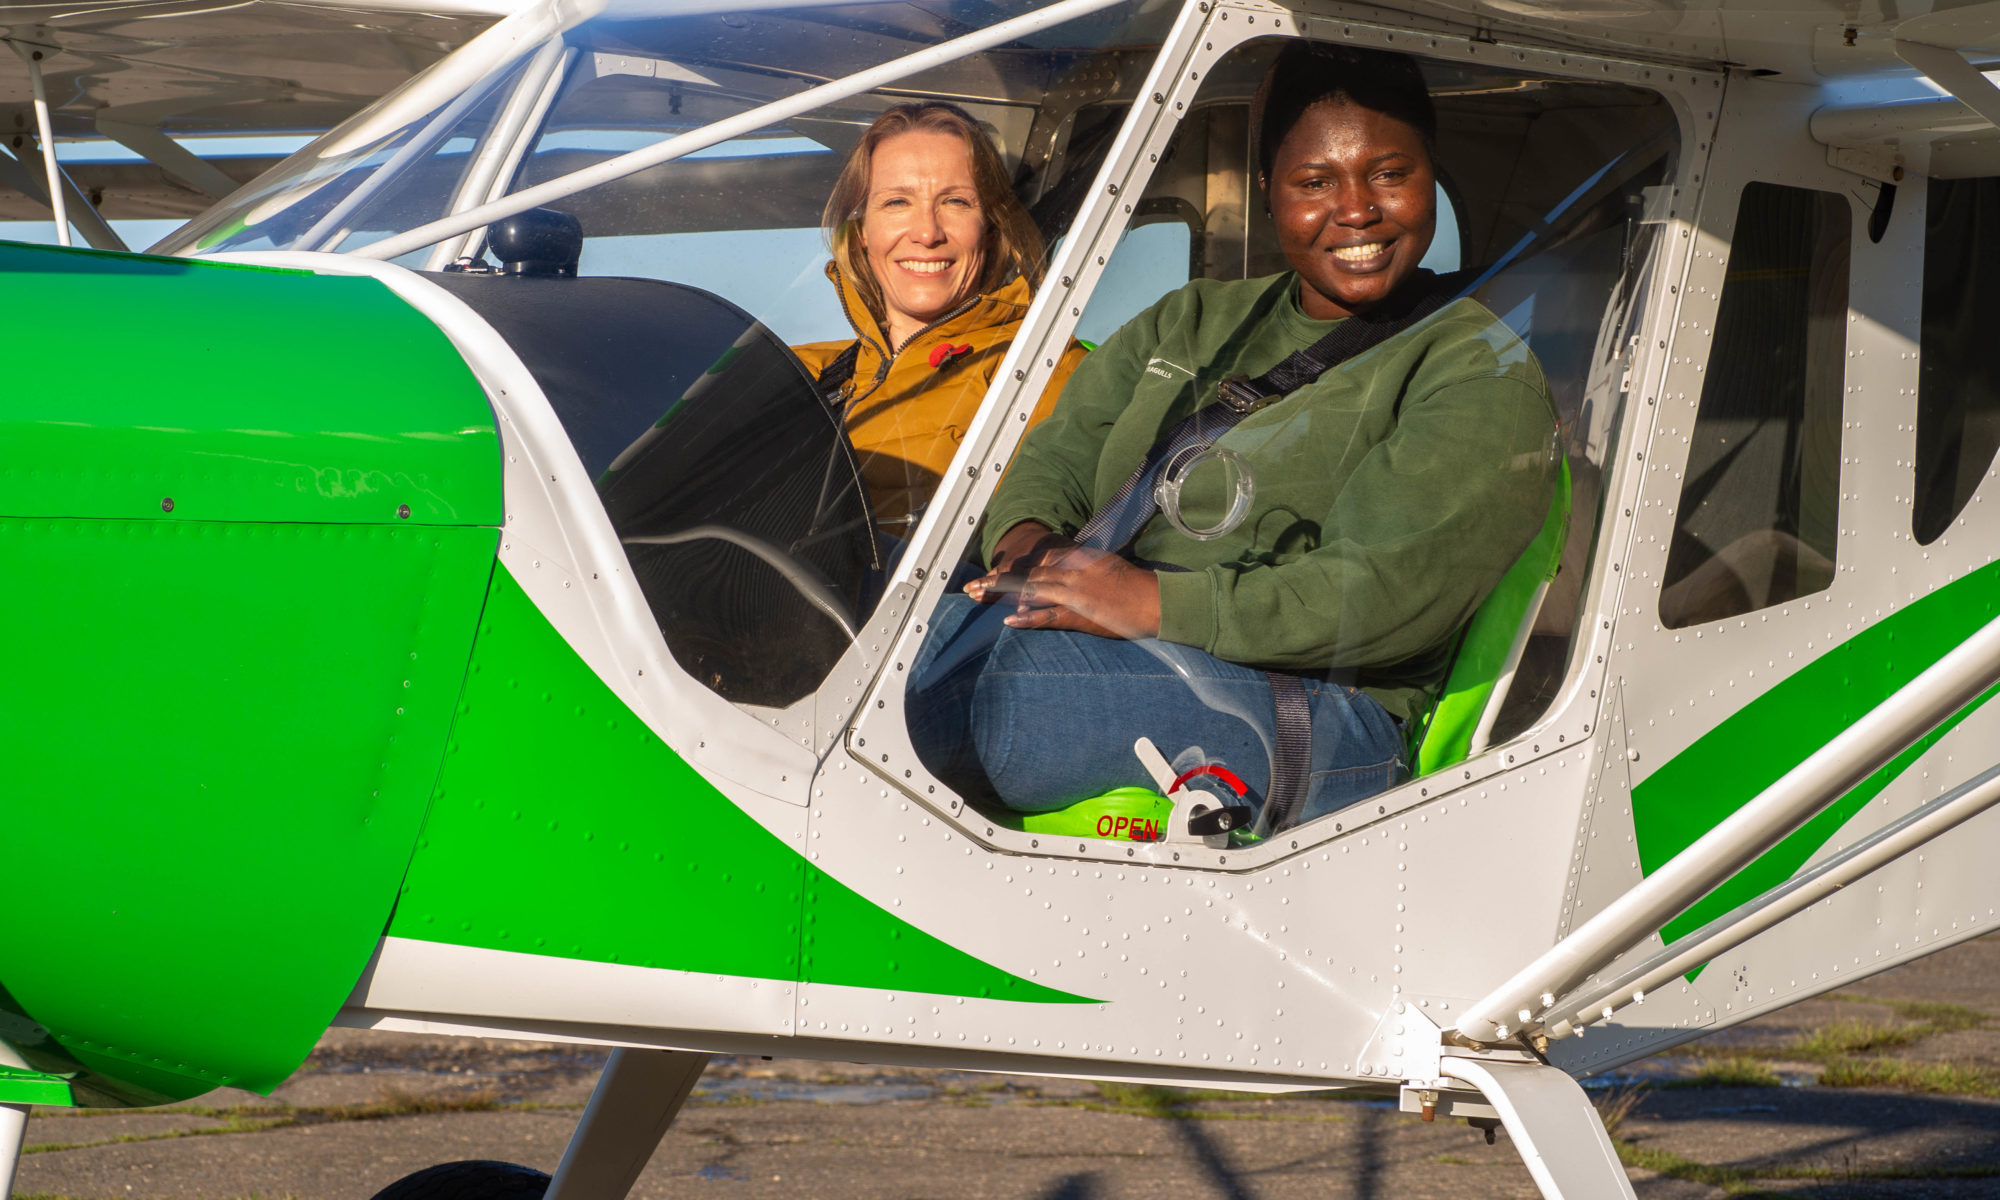 Helen Morgan learns how North Shropshire aviation firm Metal Seagulls inspires women of all ages